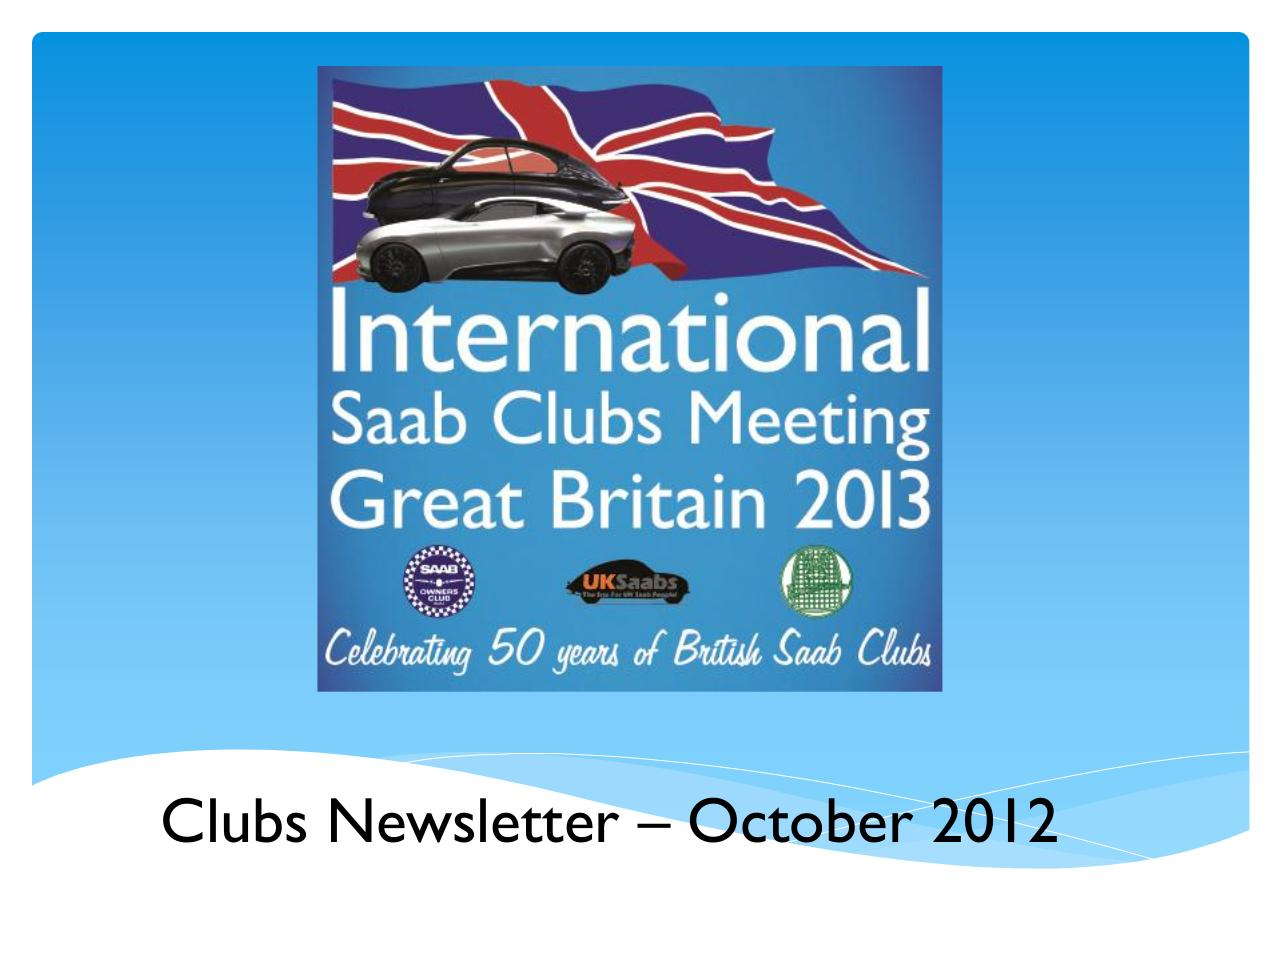 Clubs Newsletter Oct 2012.pdf - page 1/7